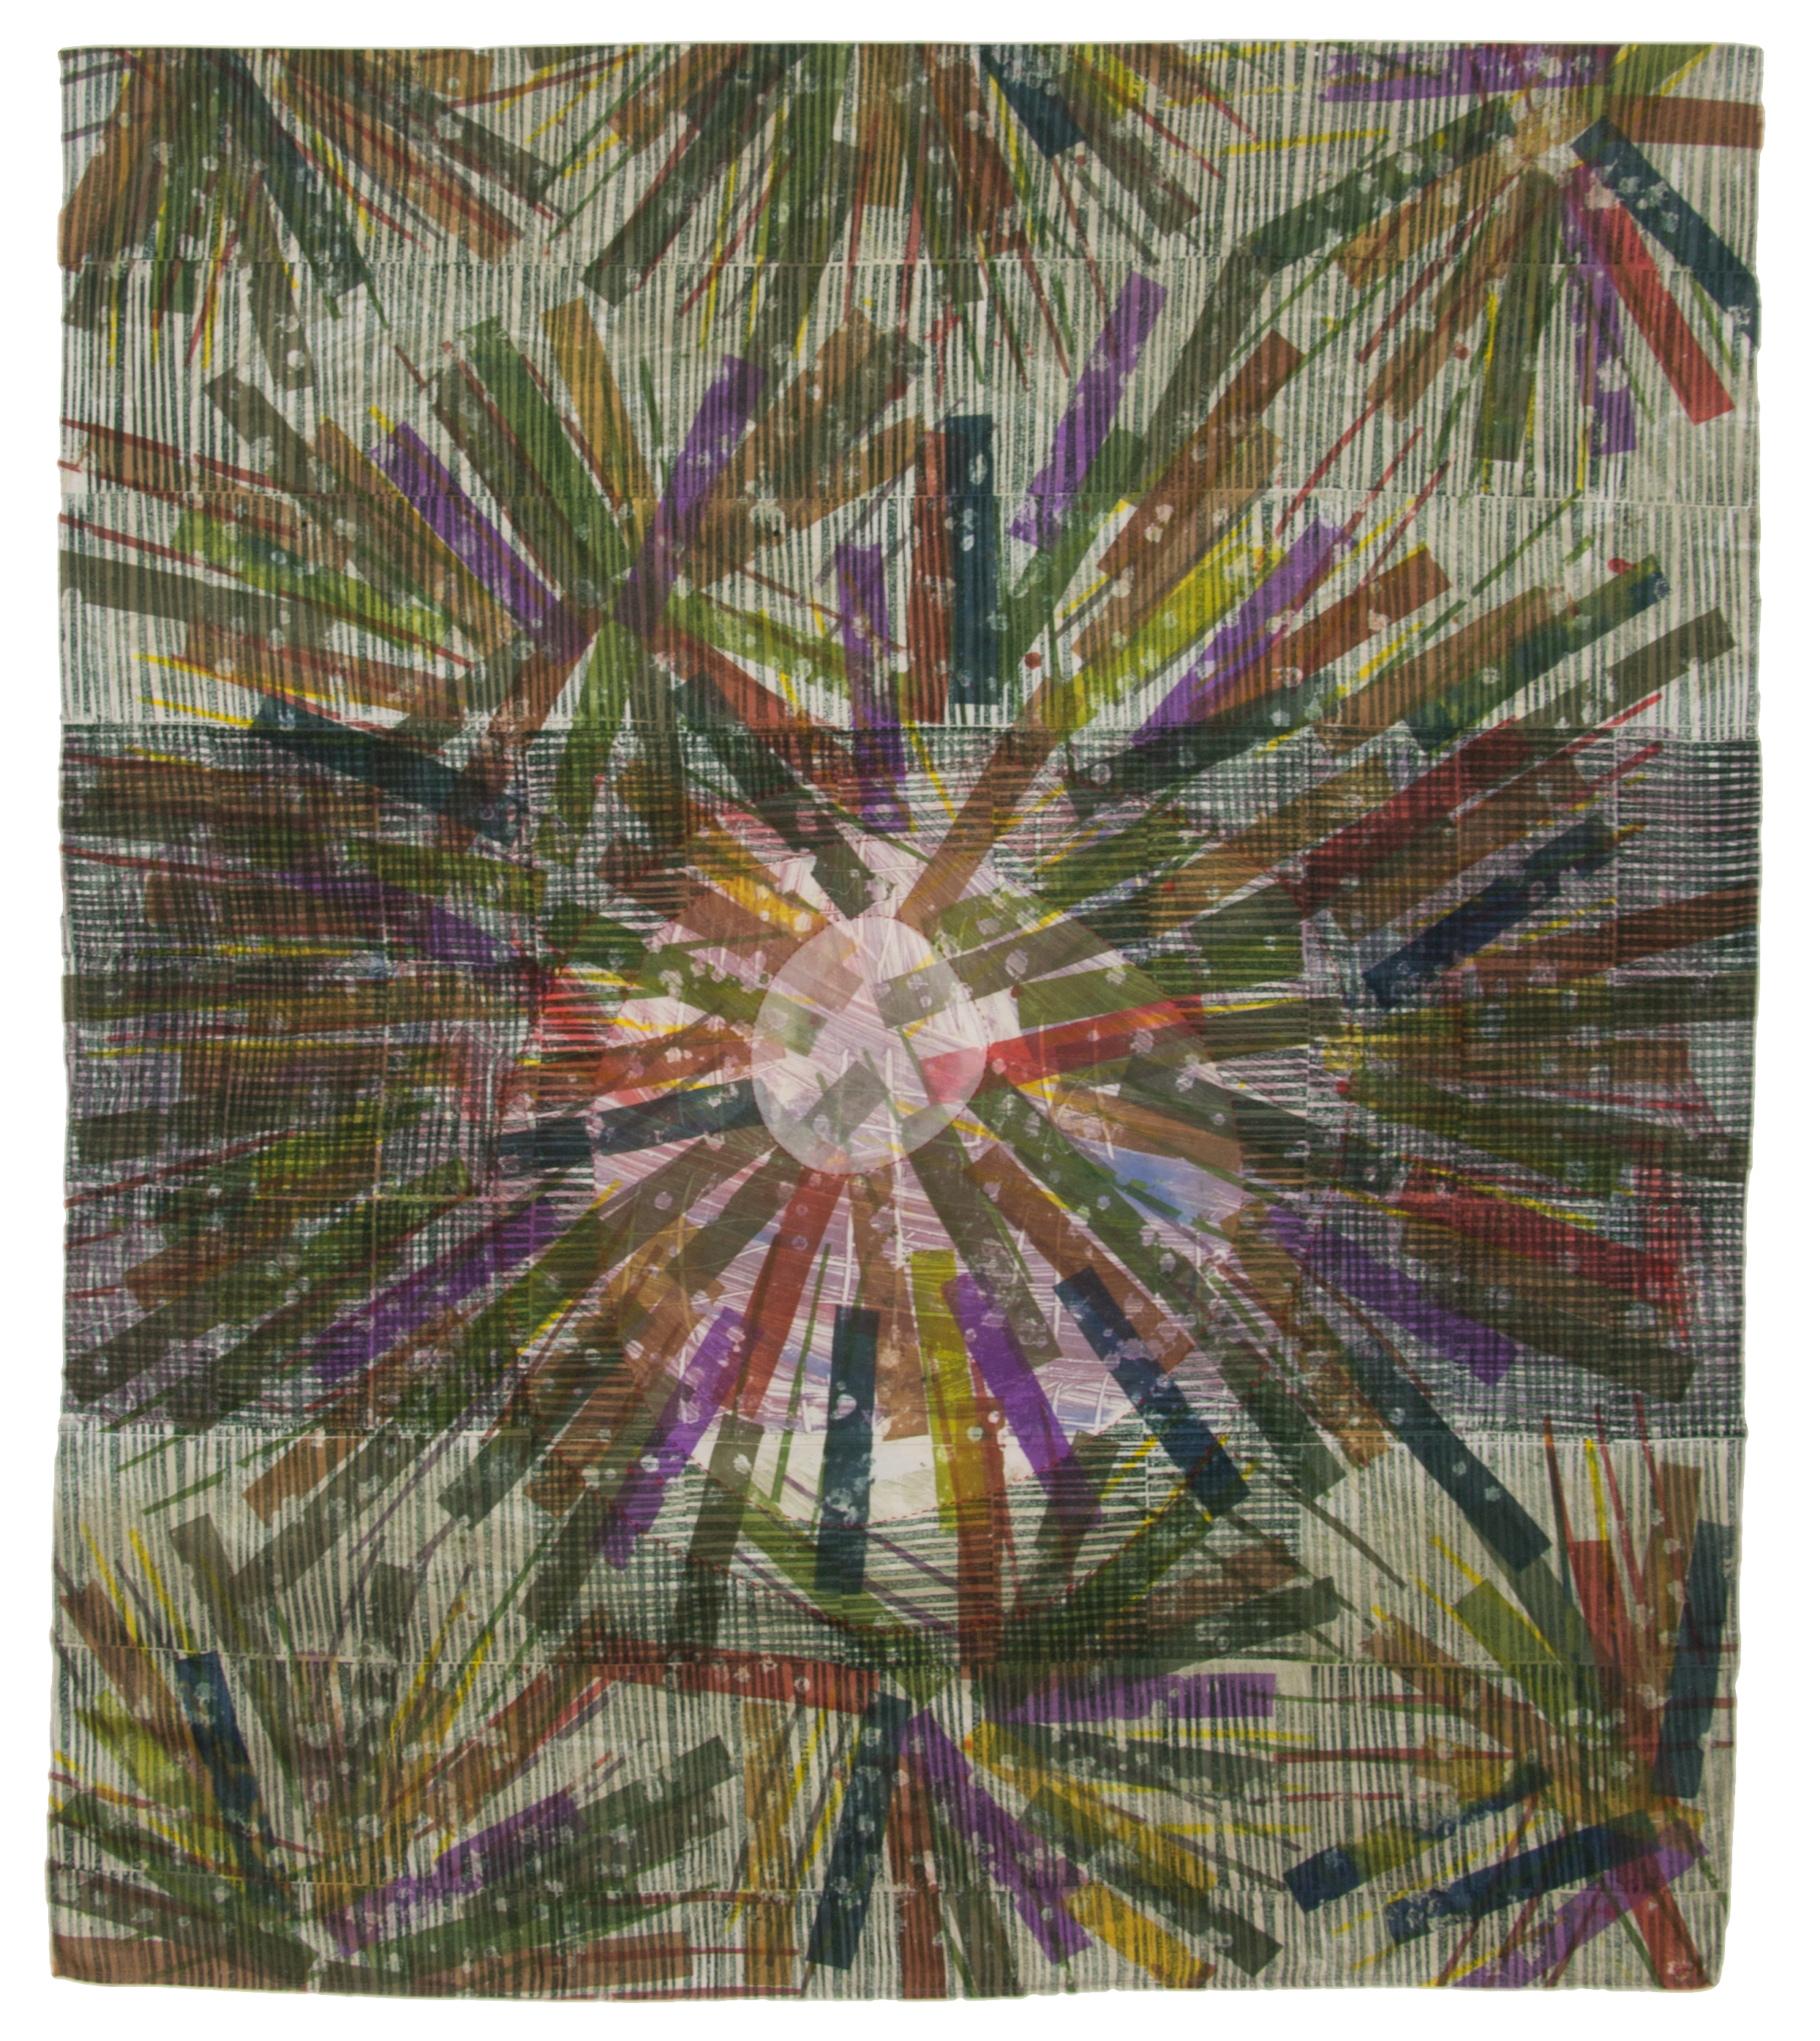 """Focal Point"" on display at the San Jose Museum of Quilts and Textiles through Jan 15, 2017"